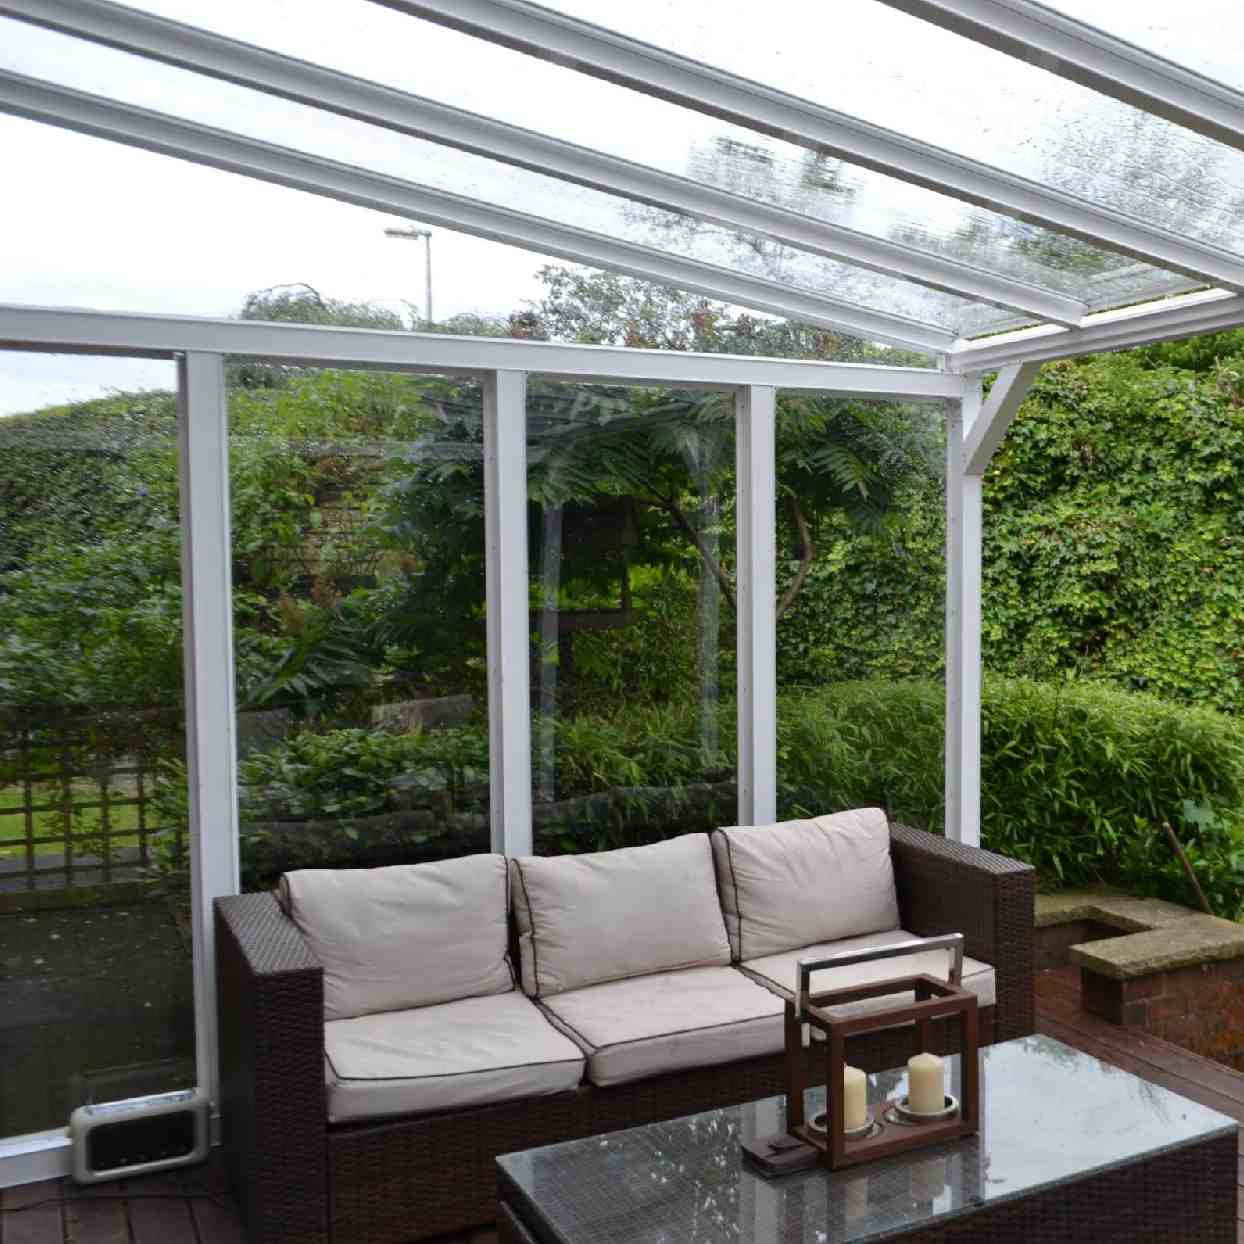 Buy Omega Verandah with 16mm Polycarbonate Glazing - 4.2m (W) x 3.5m (P), (3) Supporting Posts online today